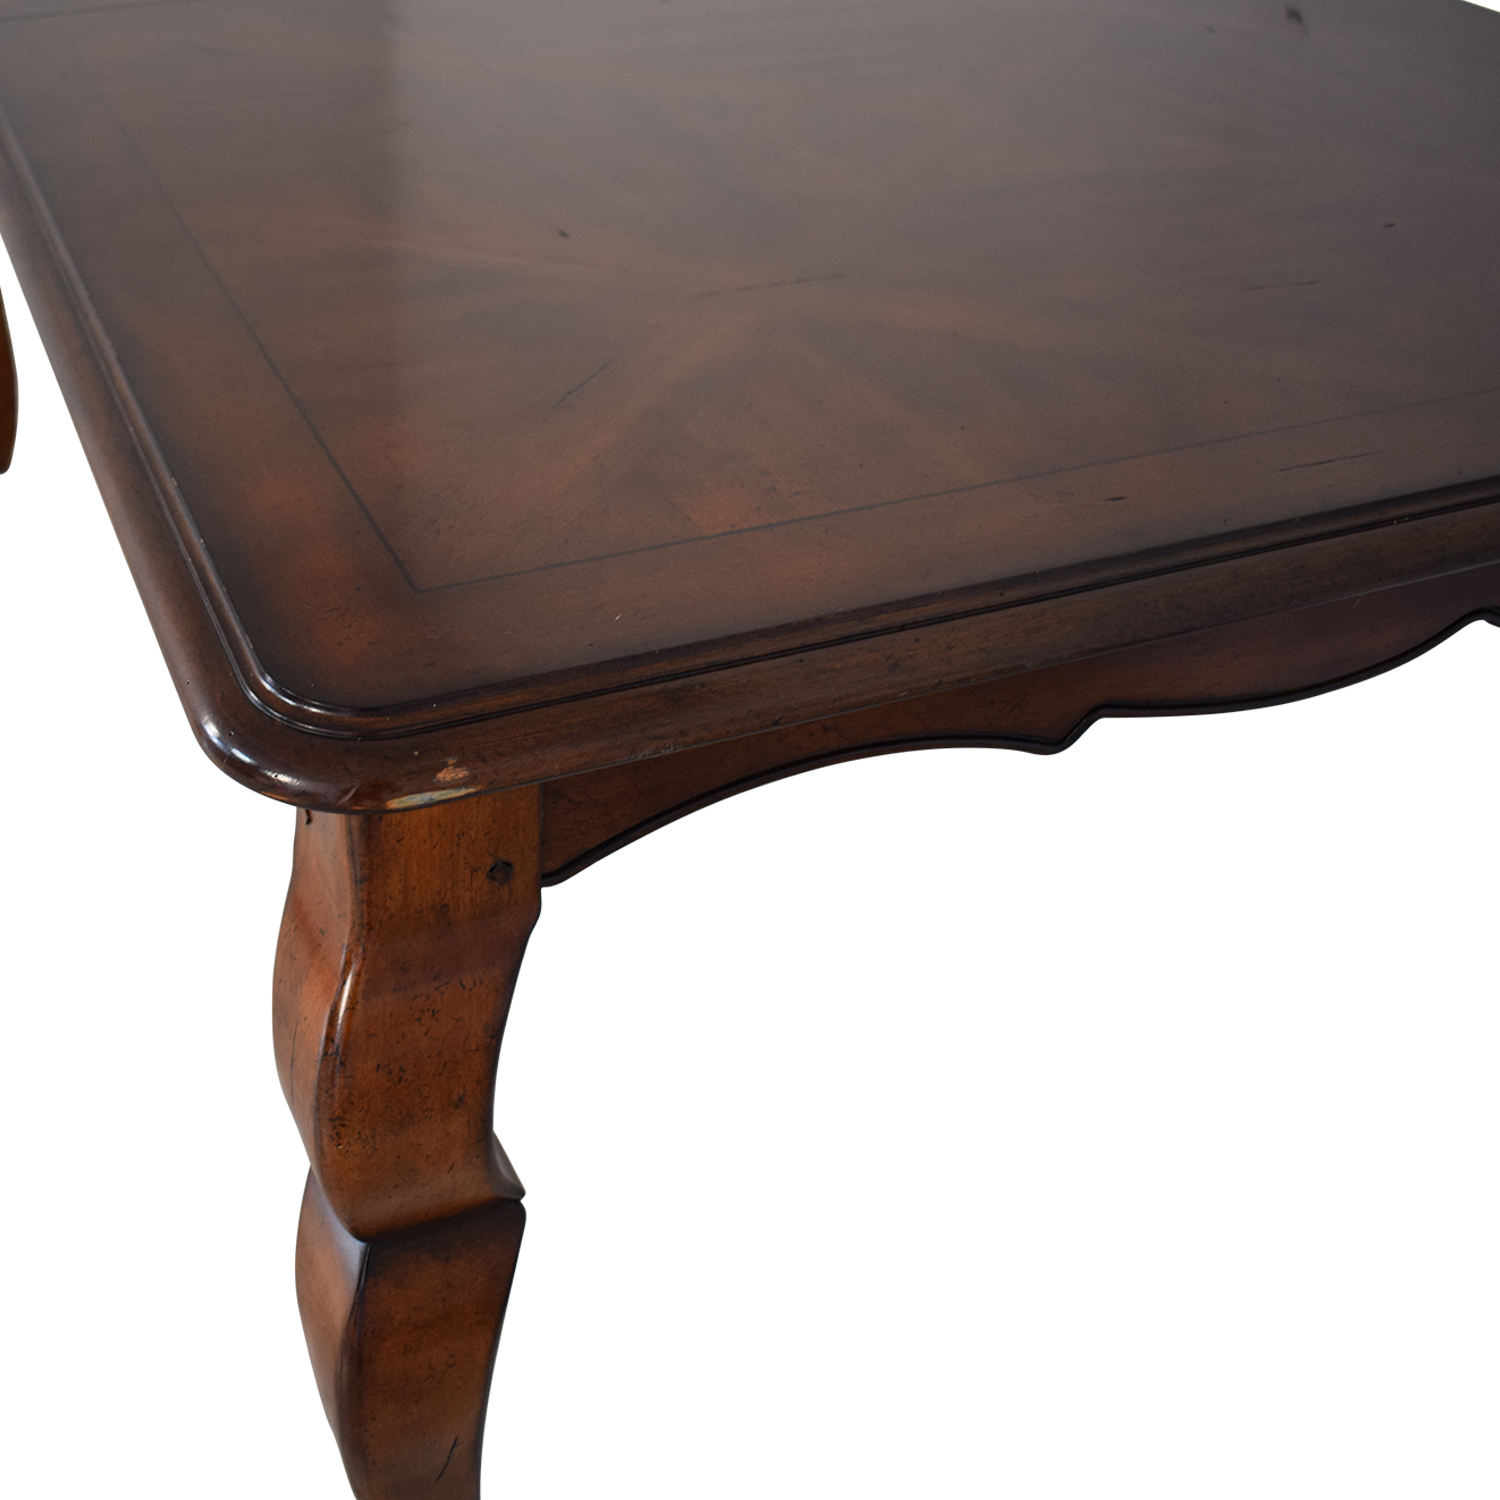 Drexel Heritage Drexel Heritage Extendable Dining Table